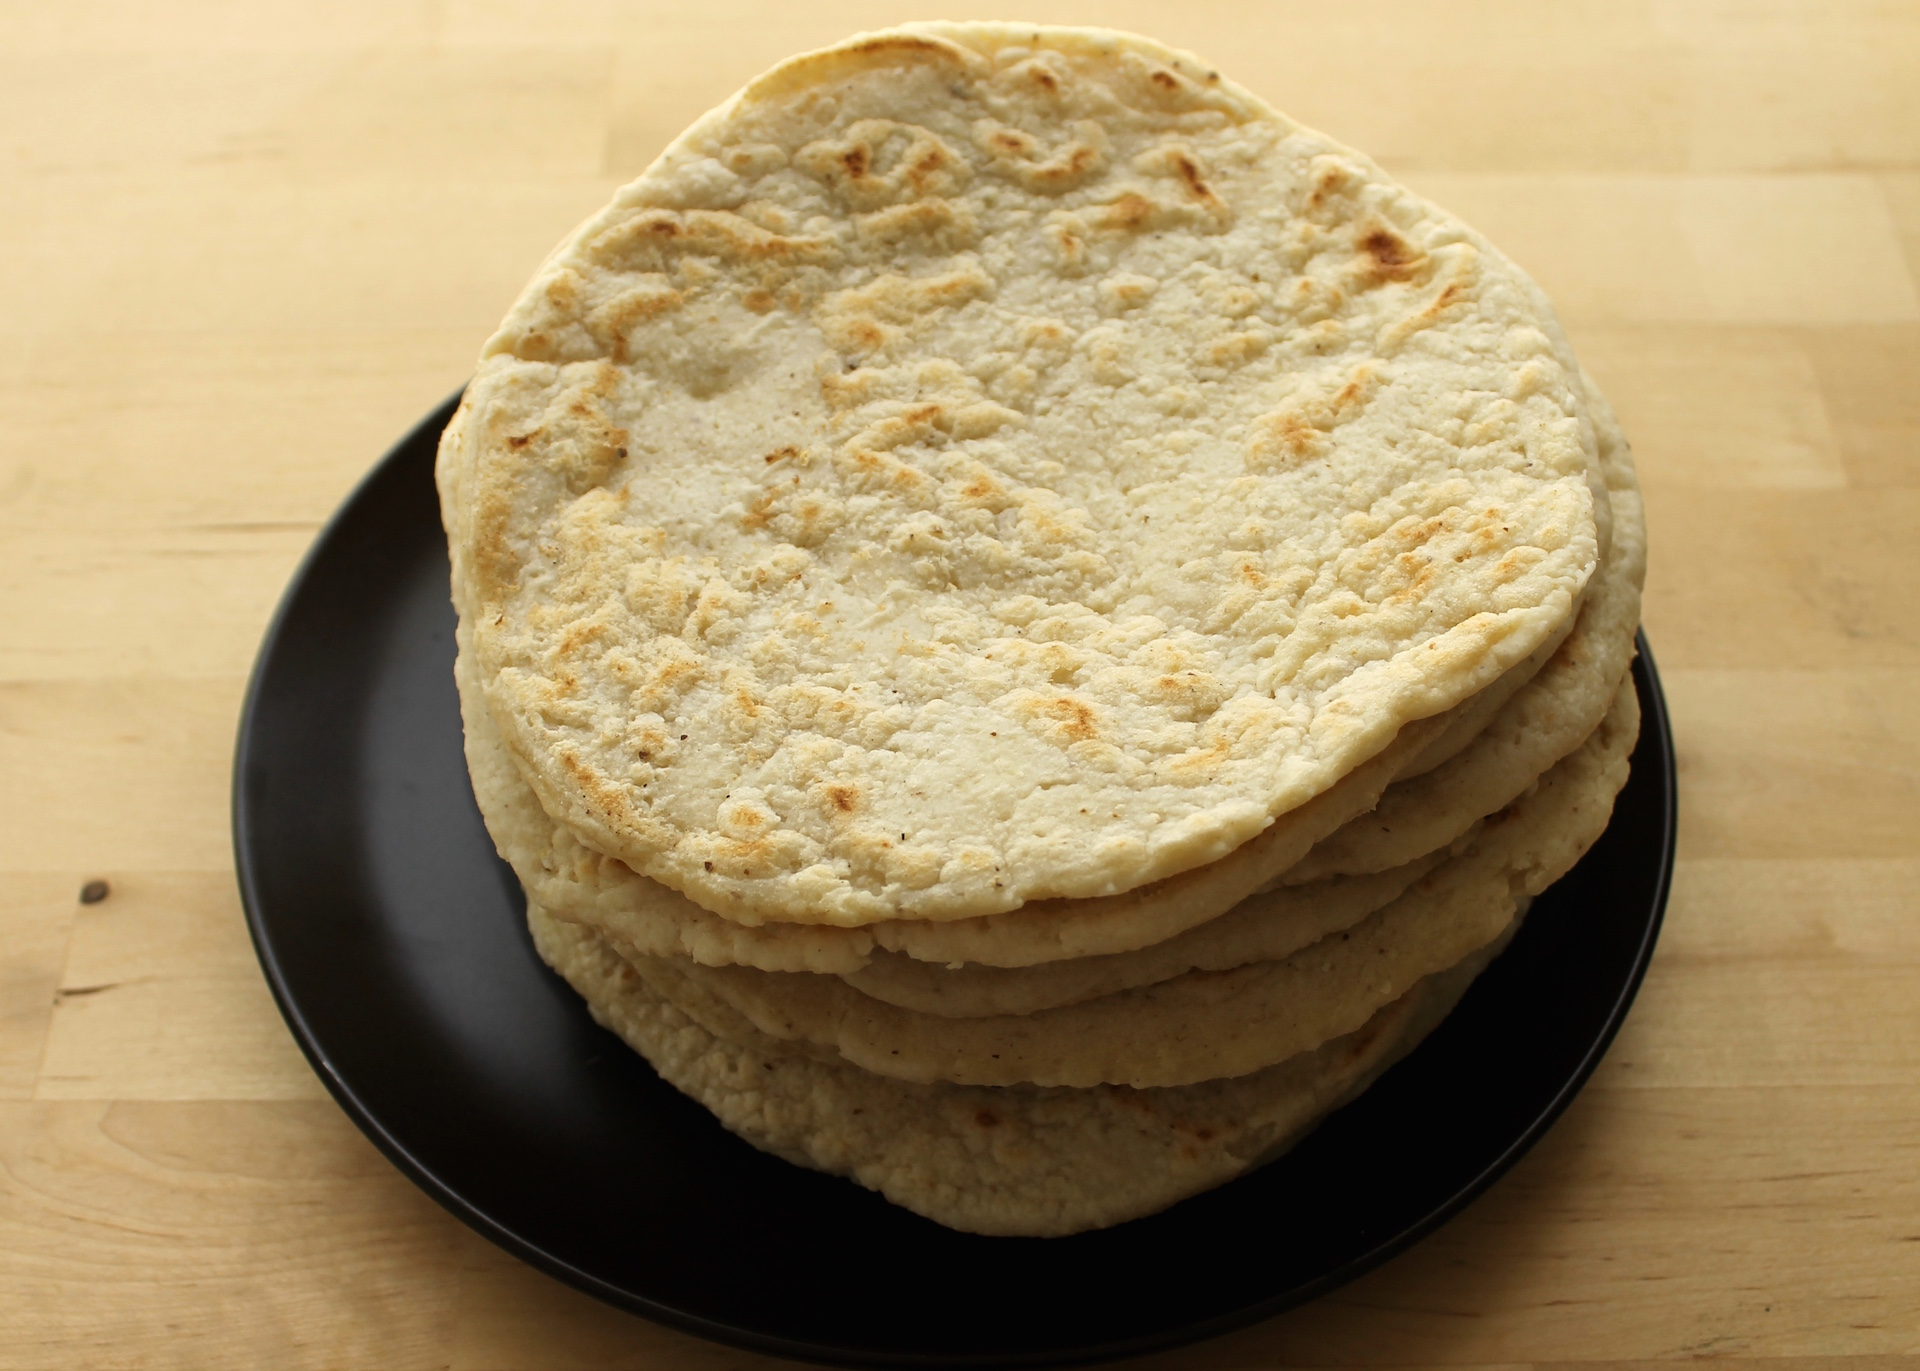 For the best hearty, handmade tortillas, look no further than La Palma.